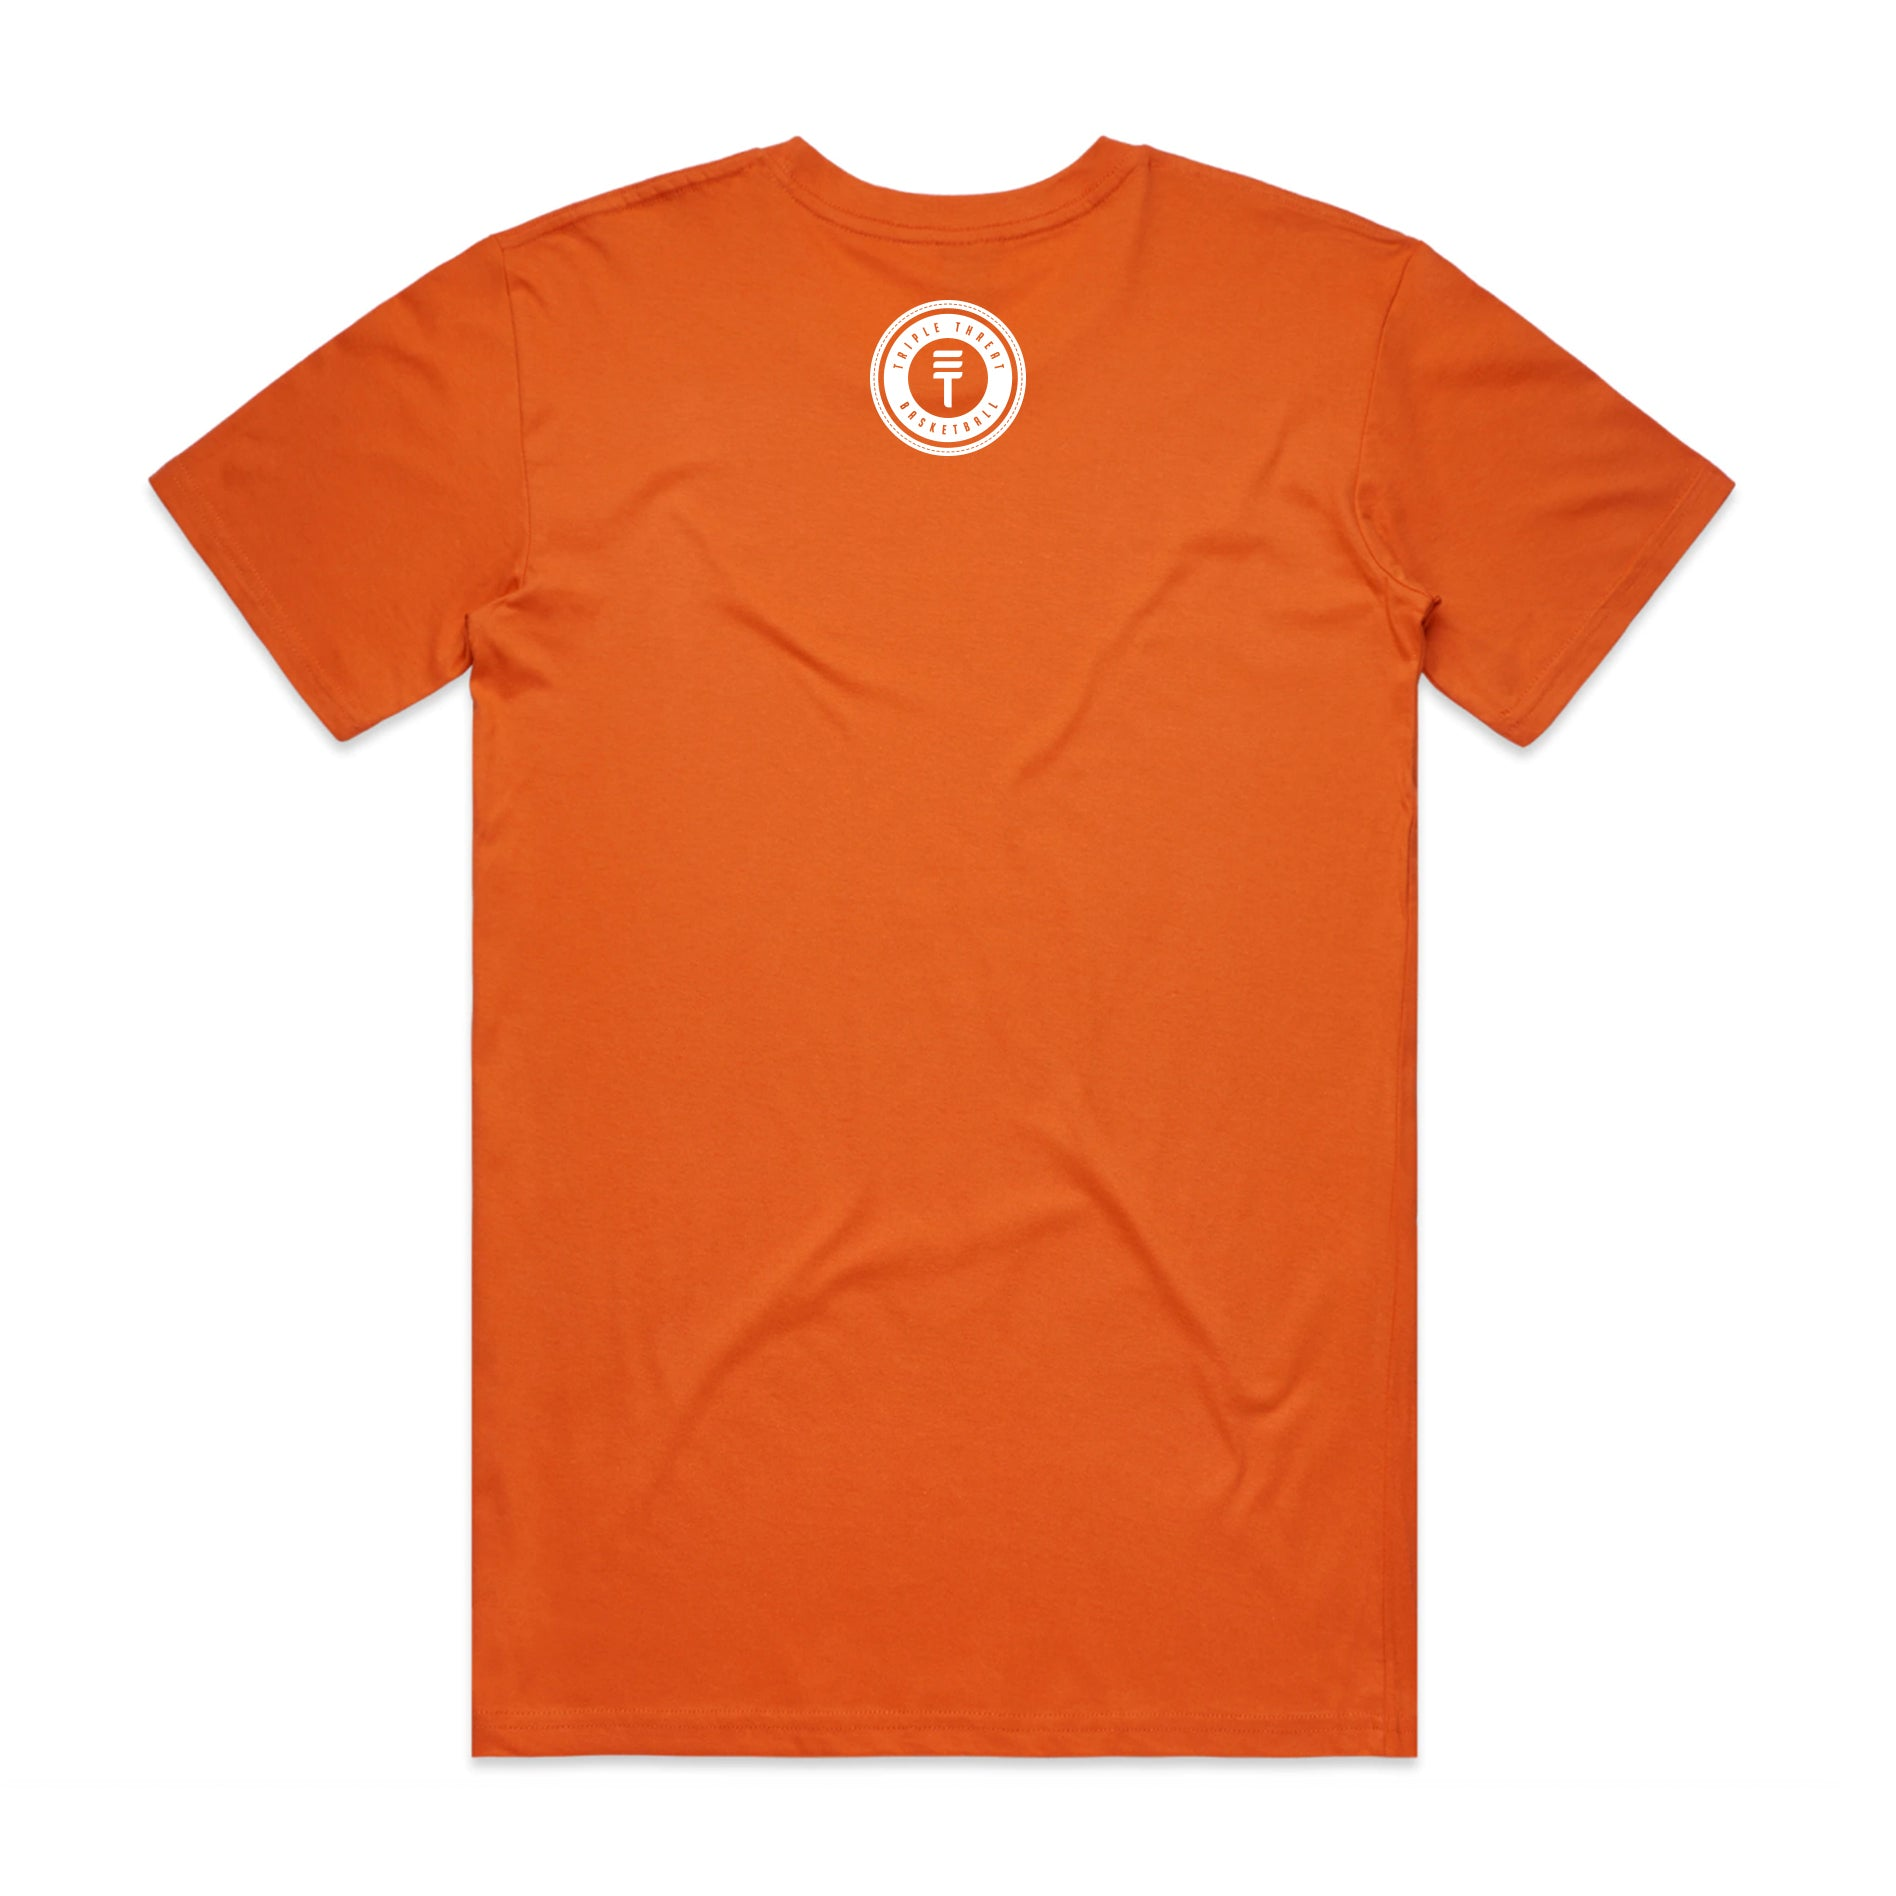 HERITAGE LOGO T-SHIRT - ORANGE